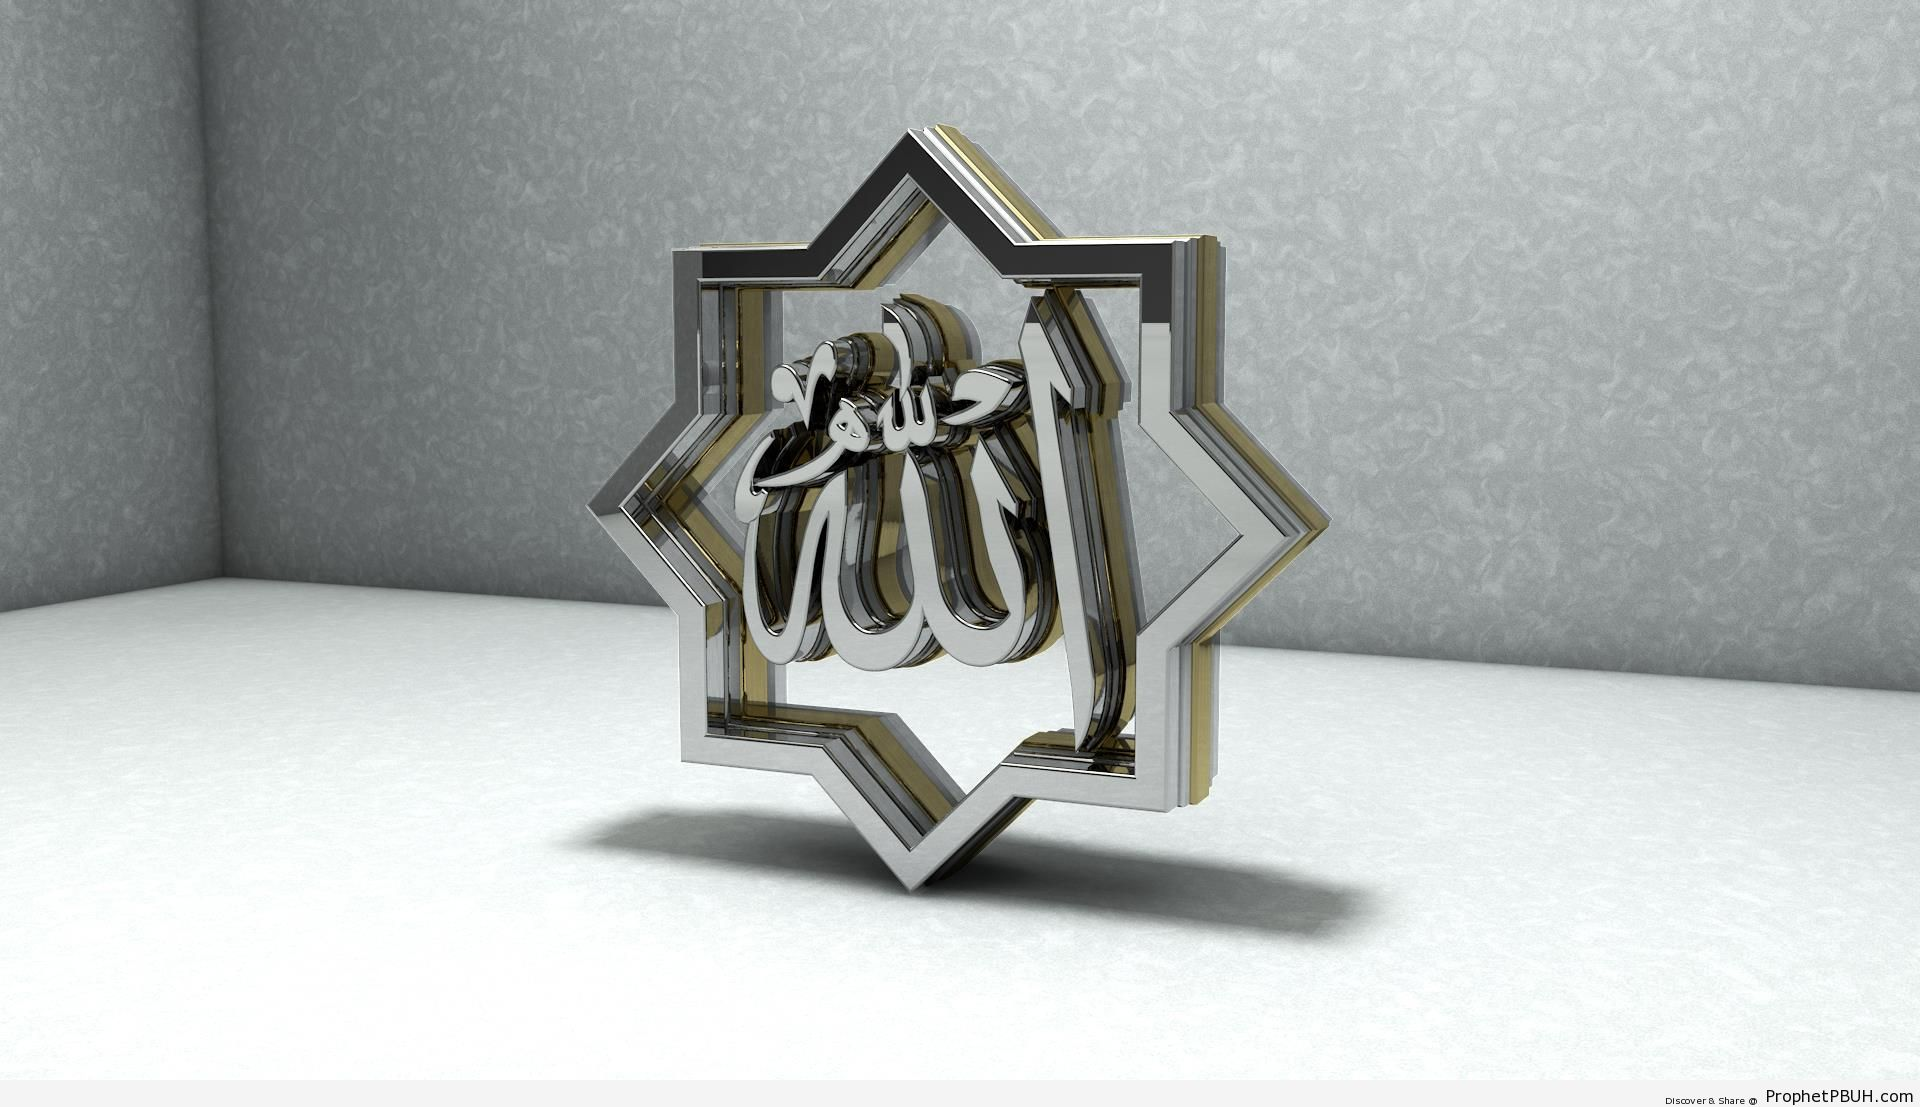 Allah Calligraphy in Eight Pointed Star (Digital 3D Calligraphy) - 3D Calligraphy and Typography